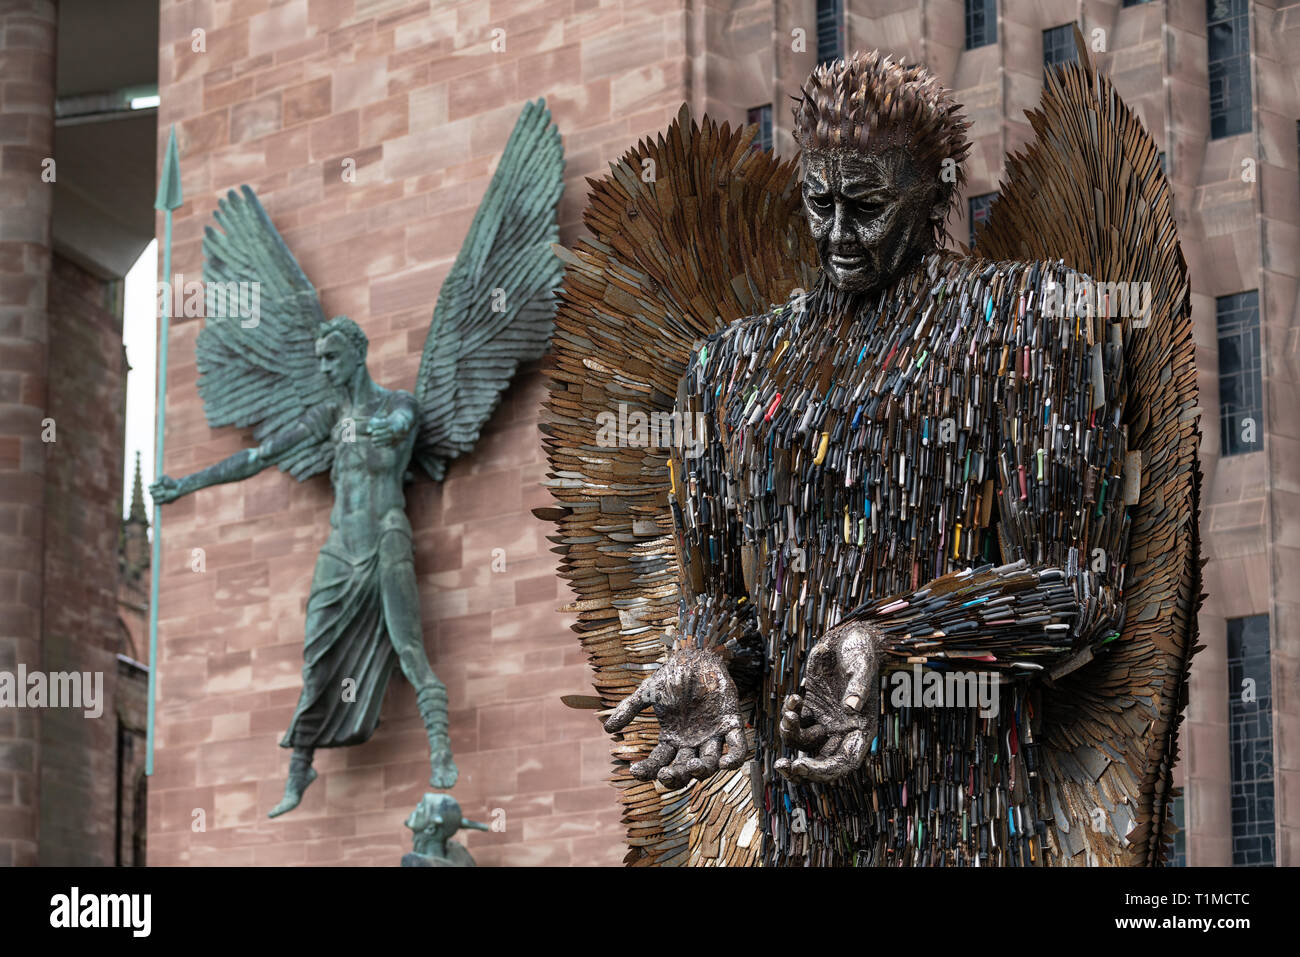 Coventry is the current city hosting the Knife Angel on its journey across the UK. The Angel has been erected outside of Coventry Cathedral, Stock Photo